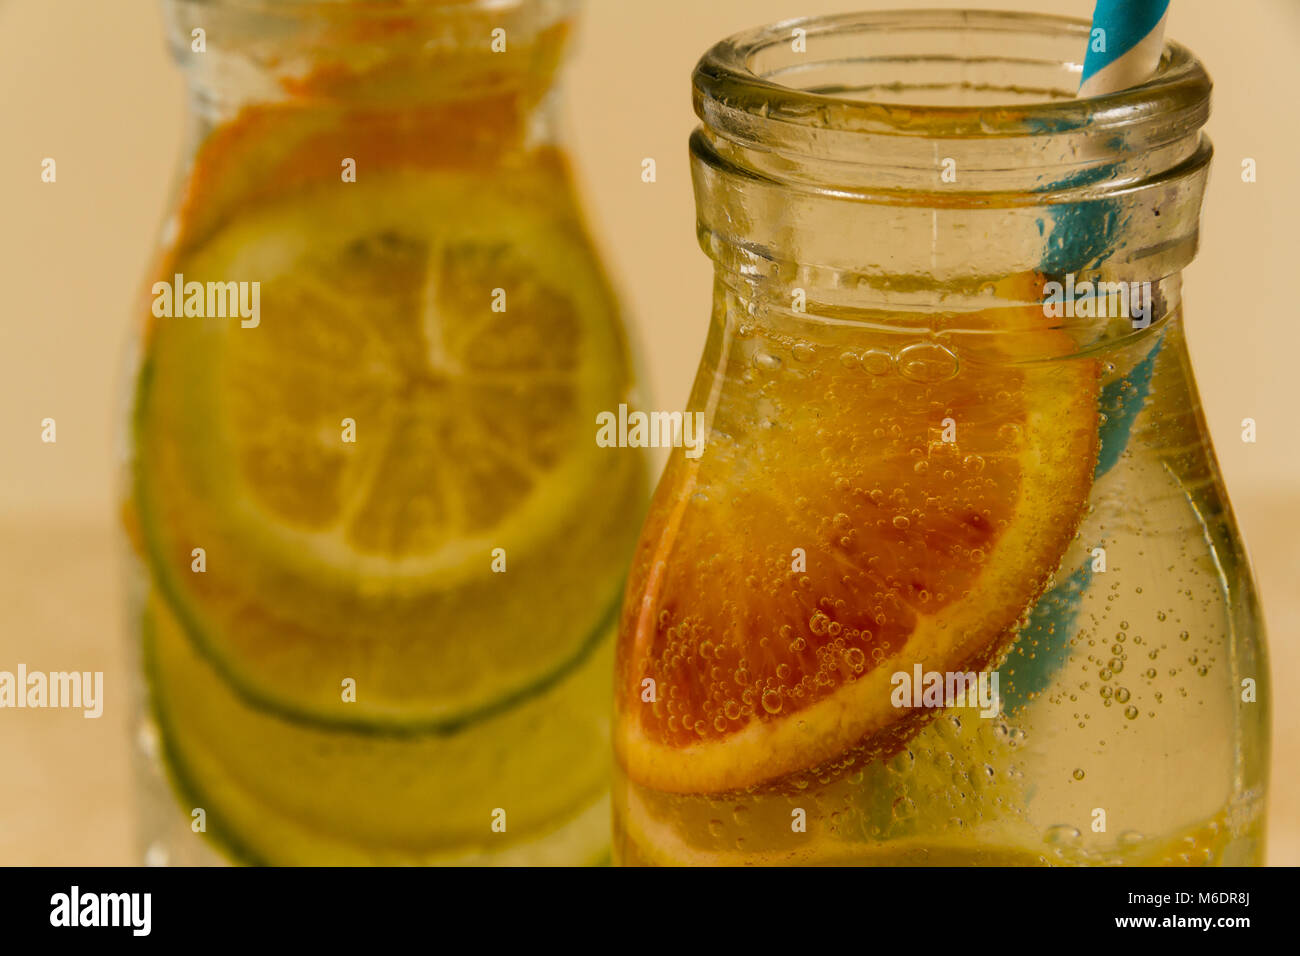 Children's sparkling water drinks in bottles with straw. Slices of orange, lemon and lime. Stock Photo